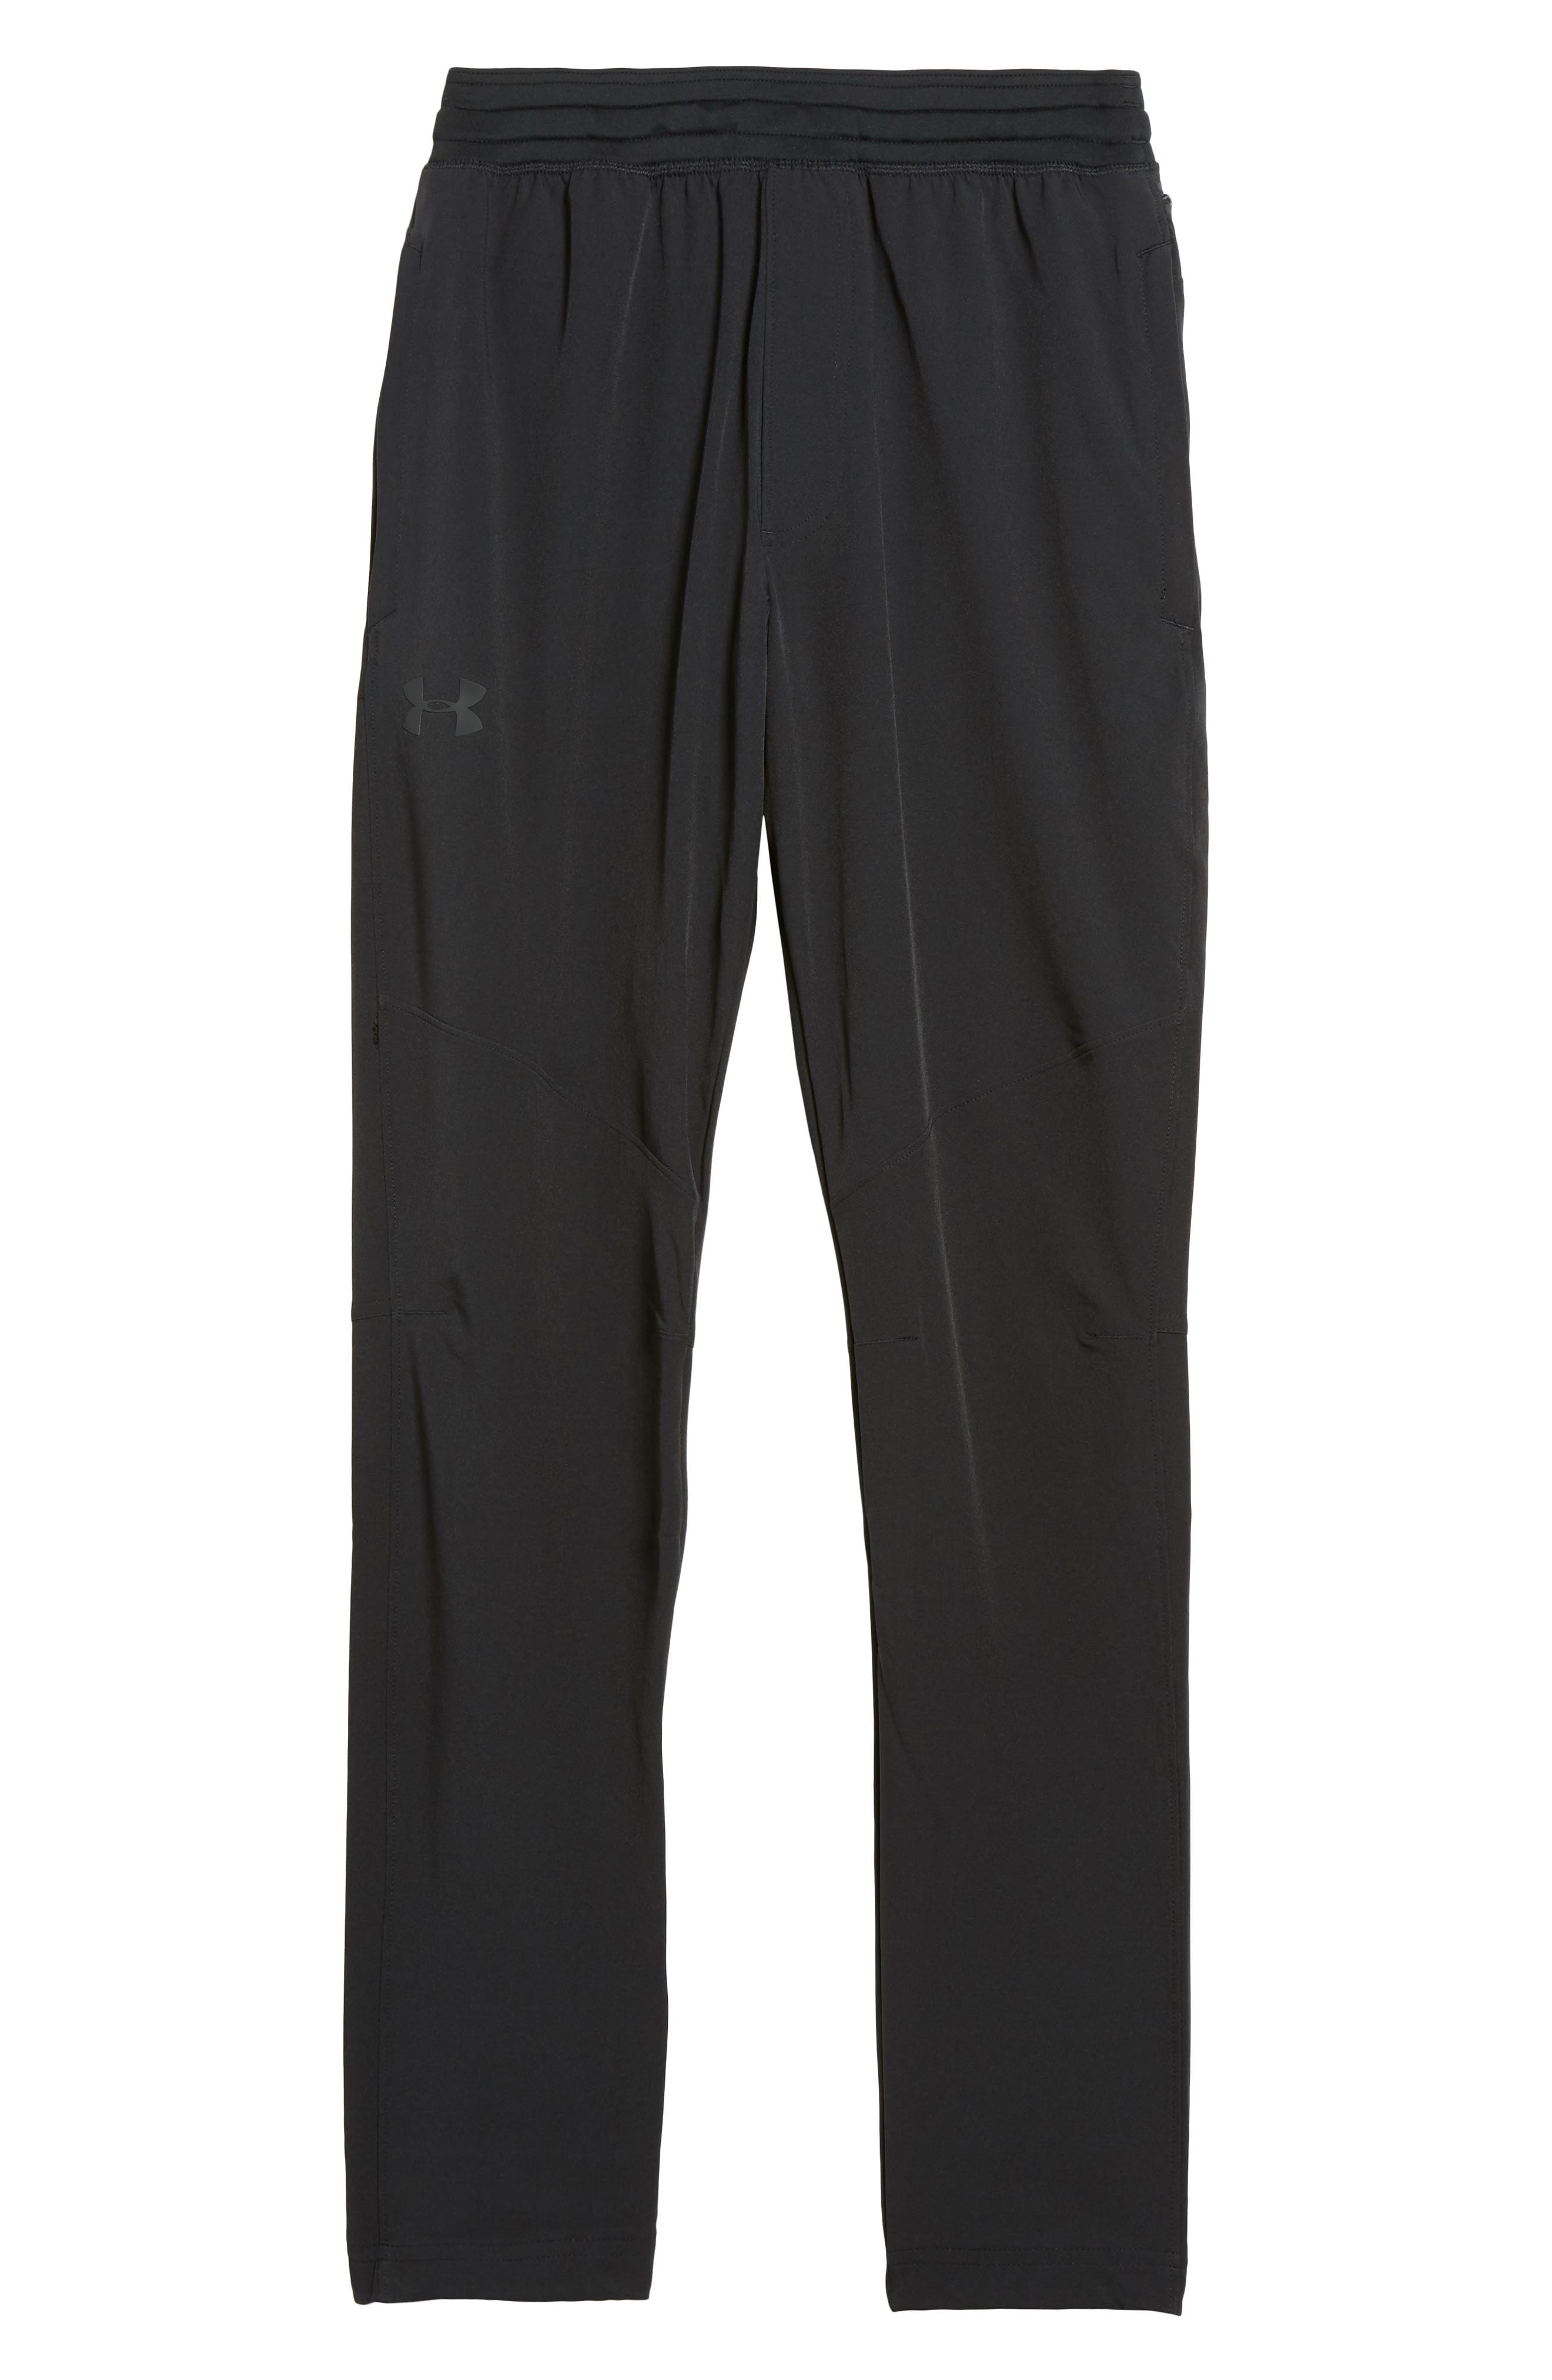 Fitted Woven Training Pants,                             Alternate thumbnail 6, color,                             BLACK